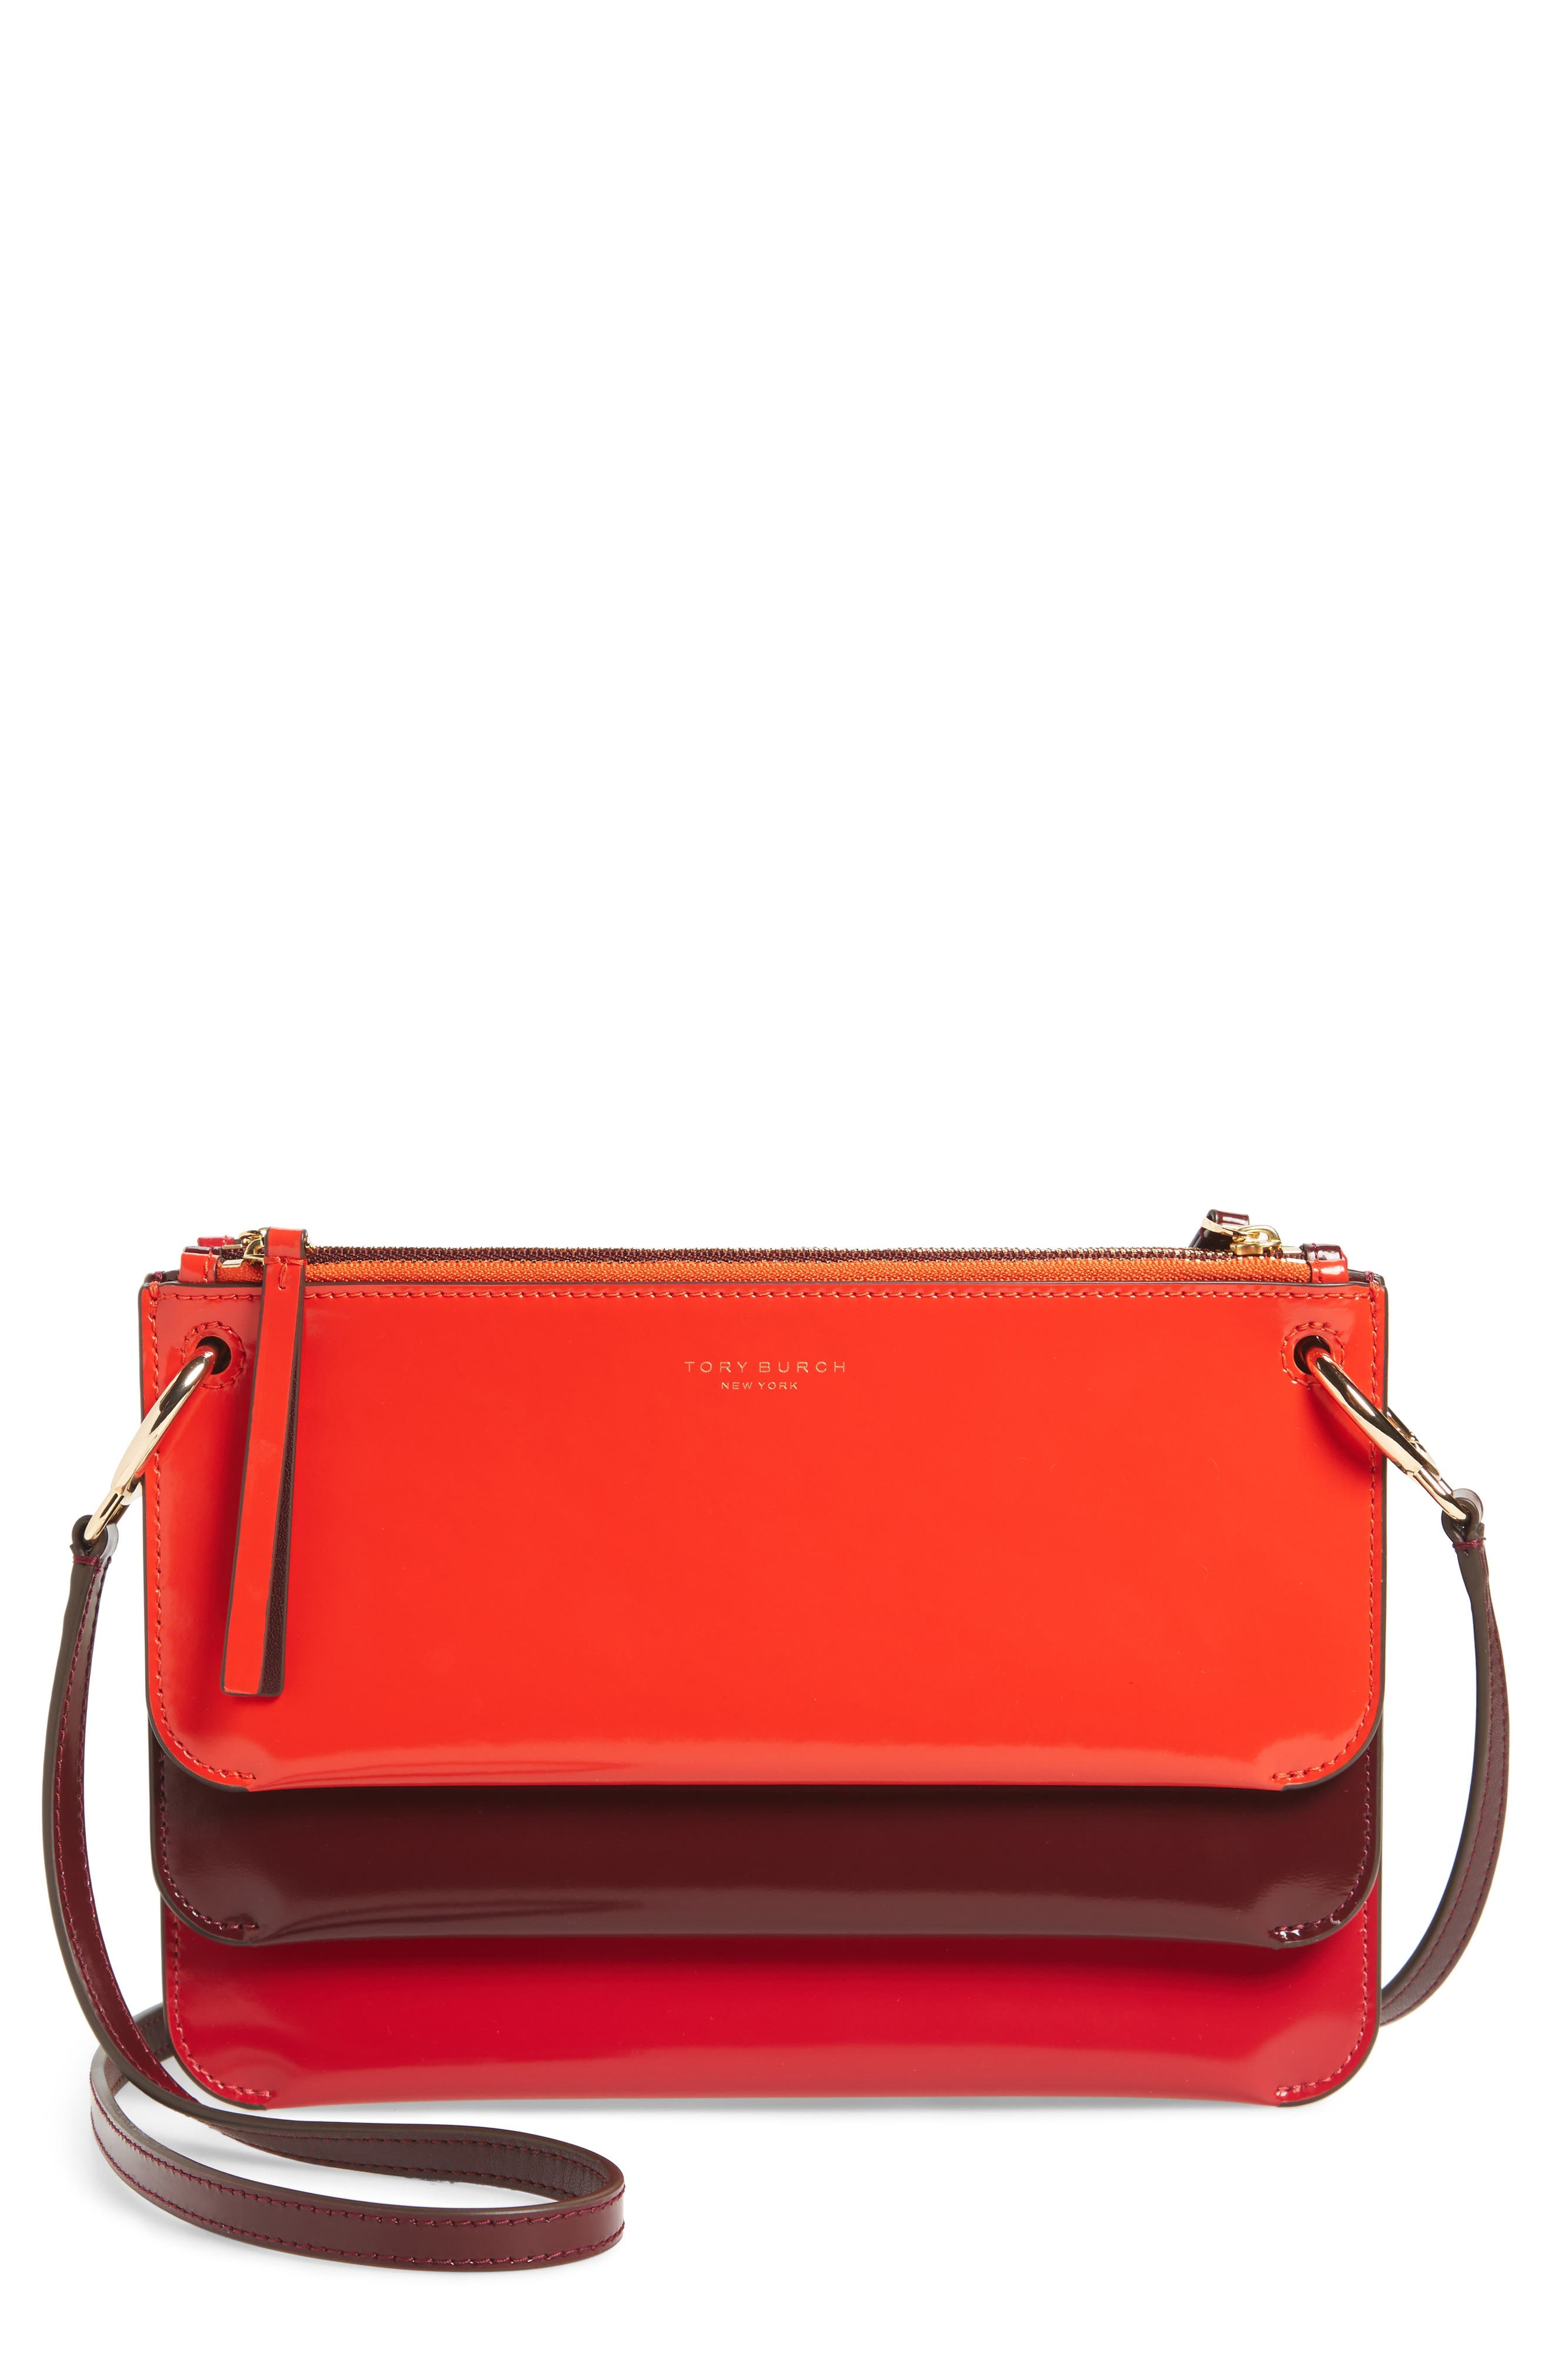 Alternate Image 1 Selected - Tory Burch Leather Accordion Crossbody Bag